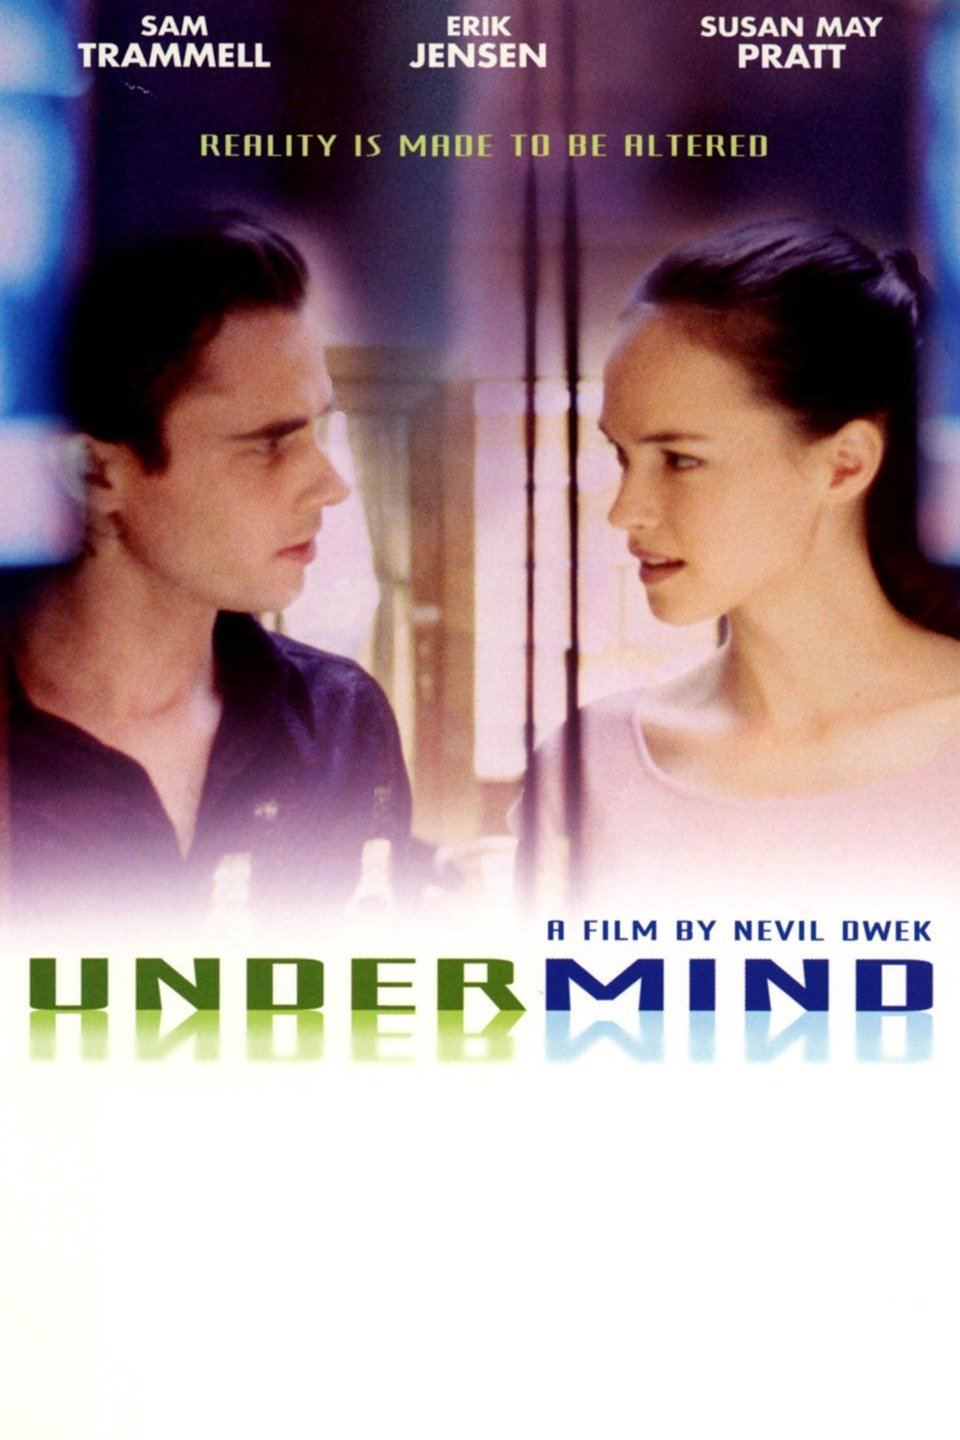 Undermind (At the End of the Day)